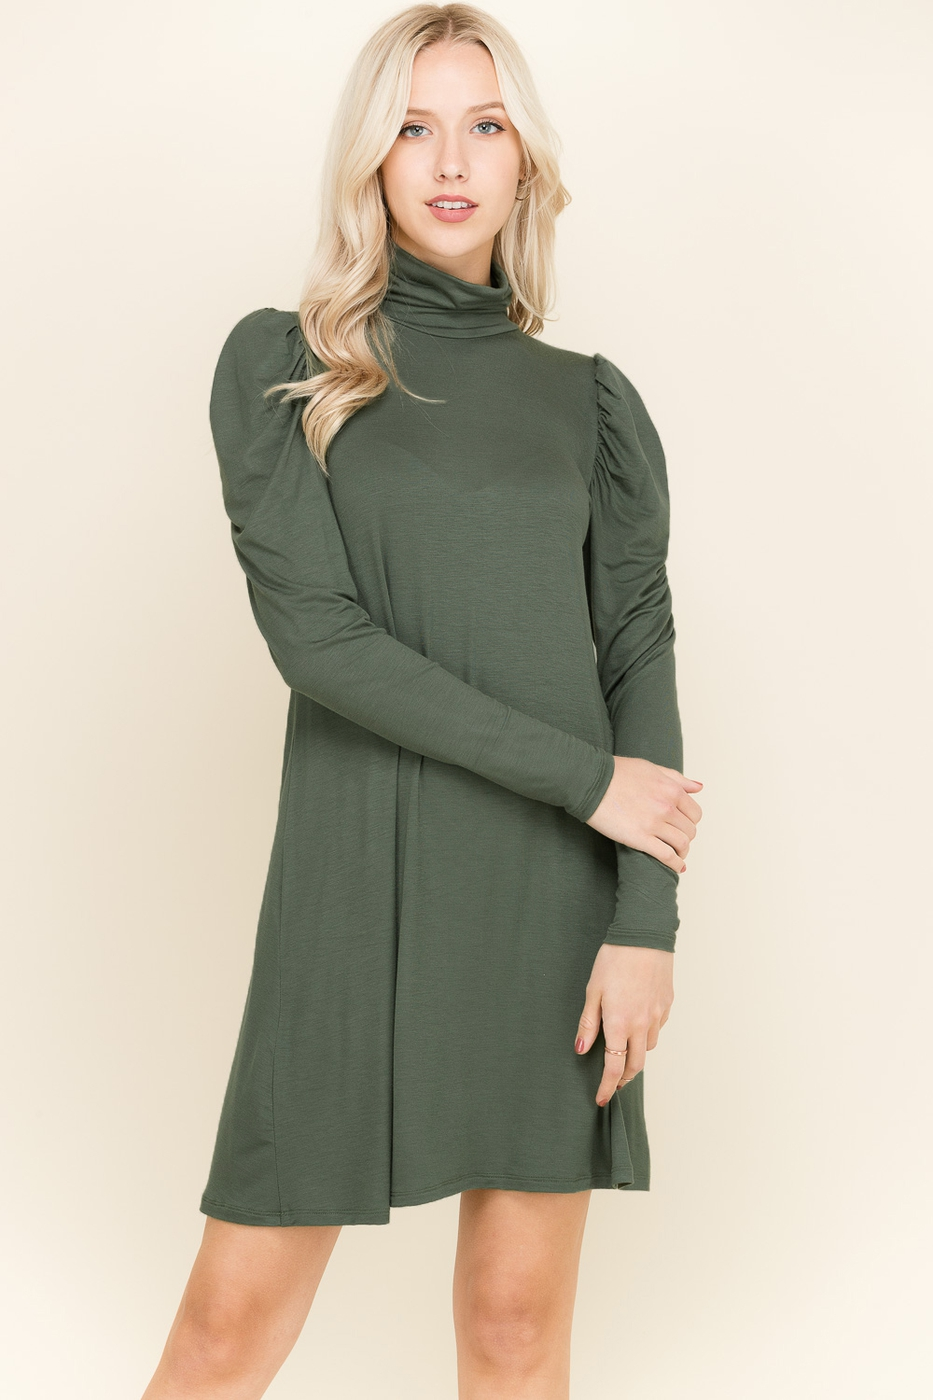 TURTLENECK SHOULDER DETAIL DRESS - orangeshine.com